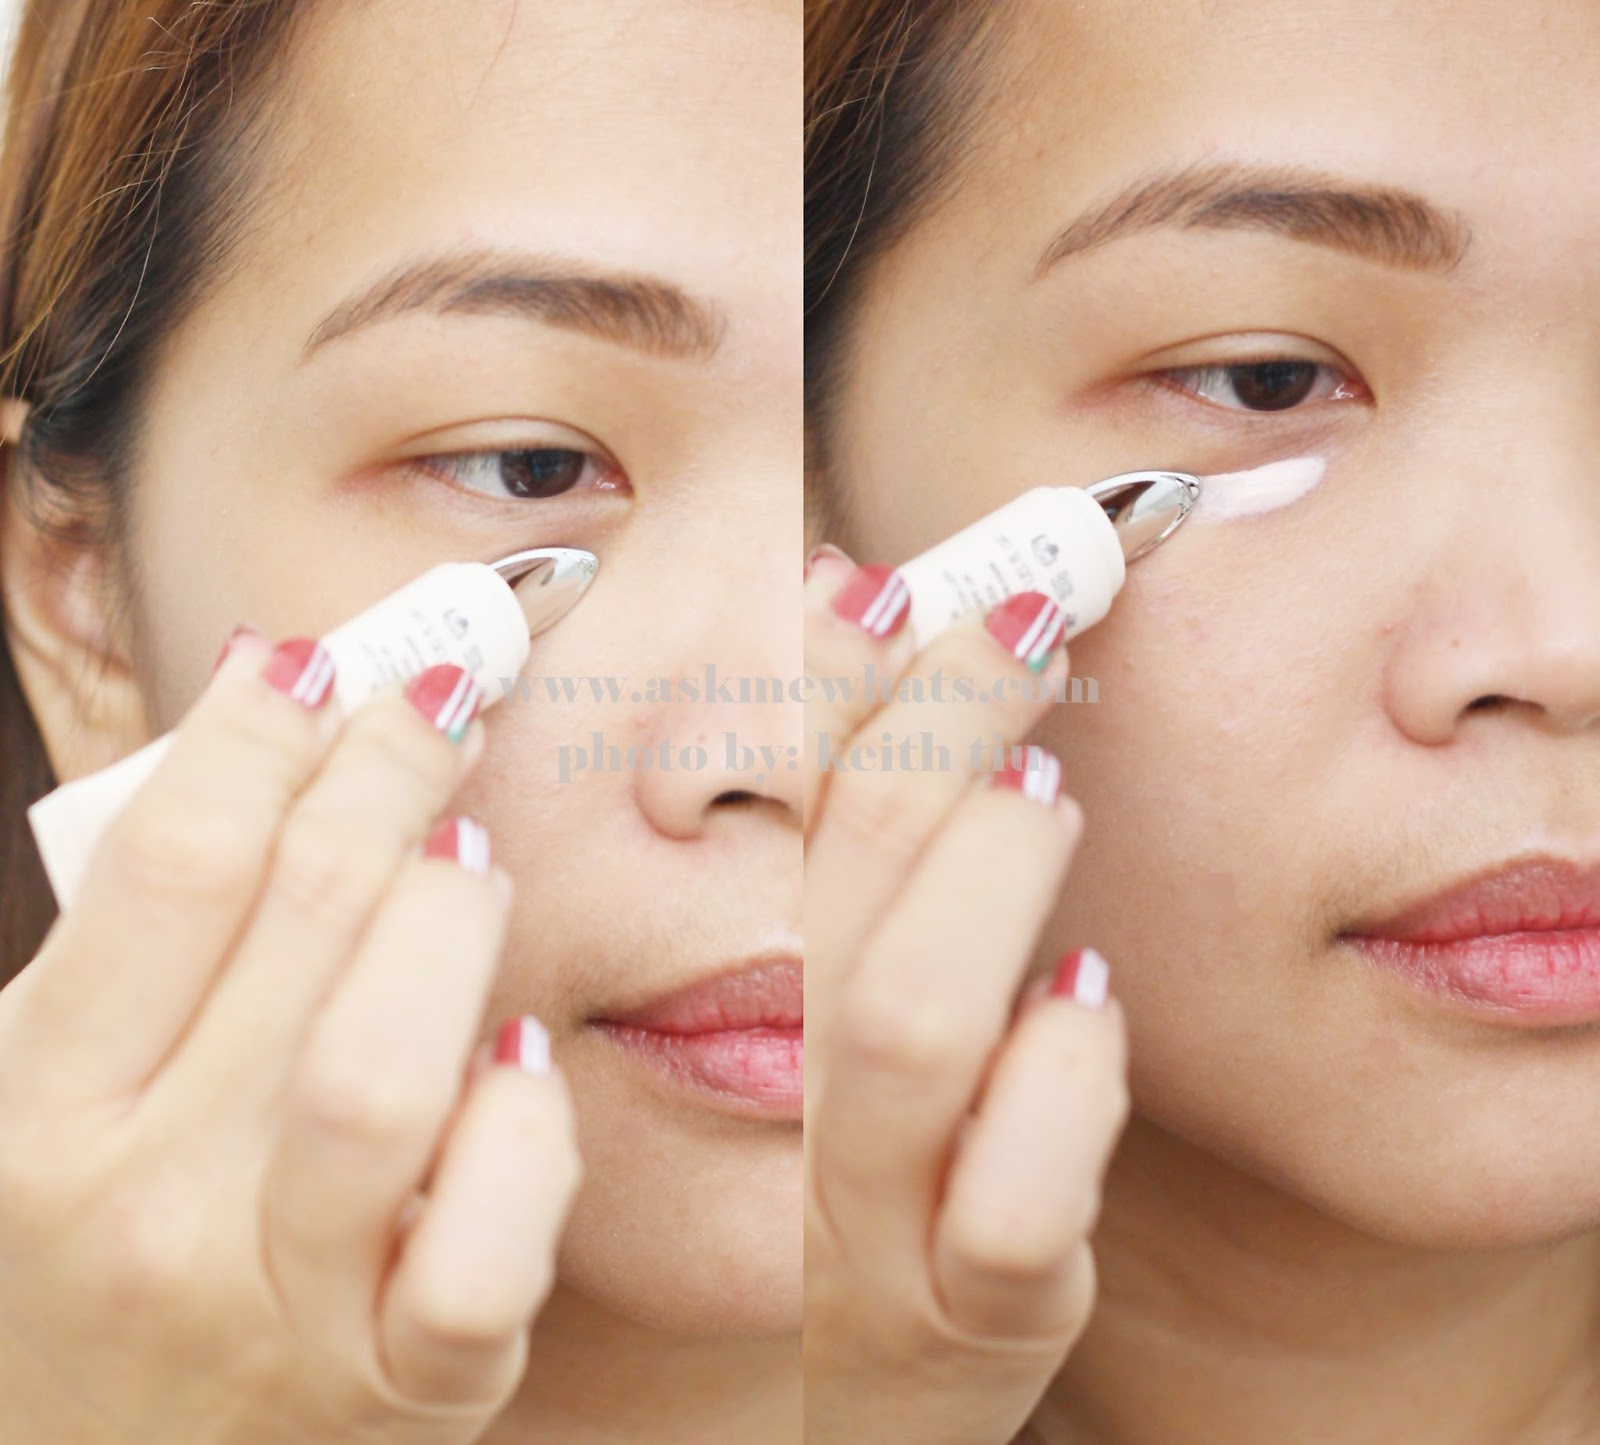 How to use photo Benefit Puff Off! Instant Eye Gel